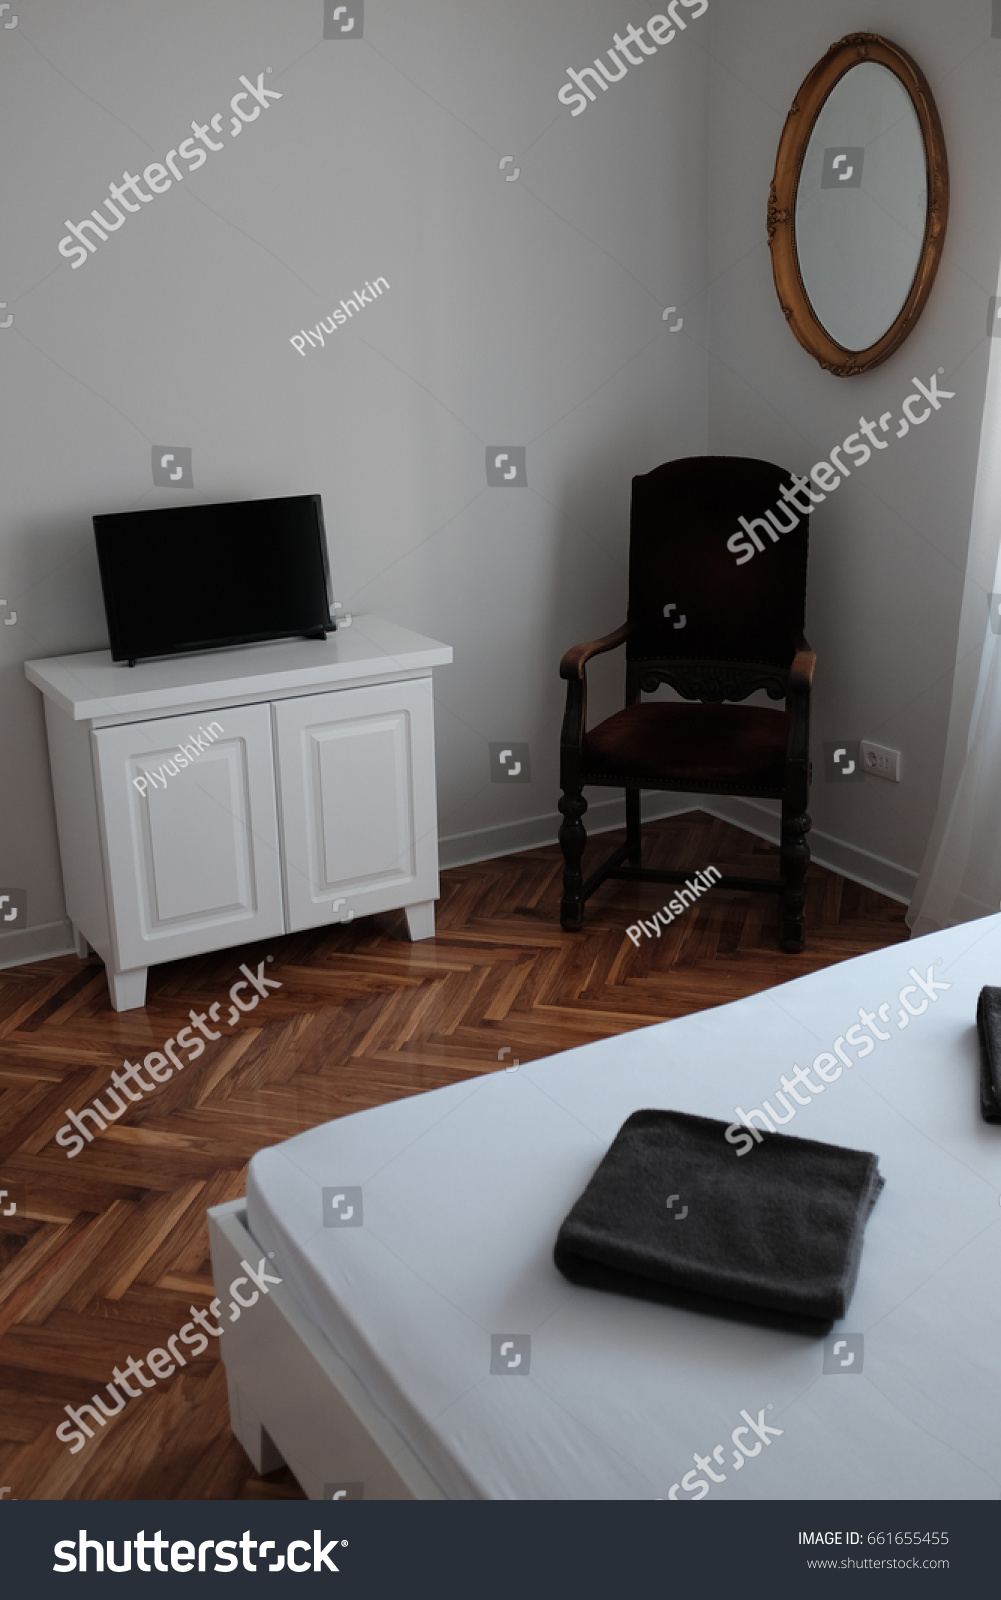 A Hotel Simply Cheap Bedroom Hotel Simply Made Stock Photo 661655455 Shutterstock